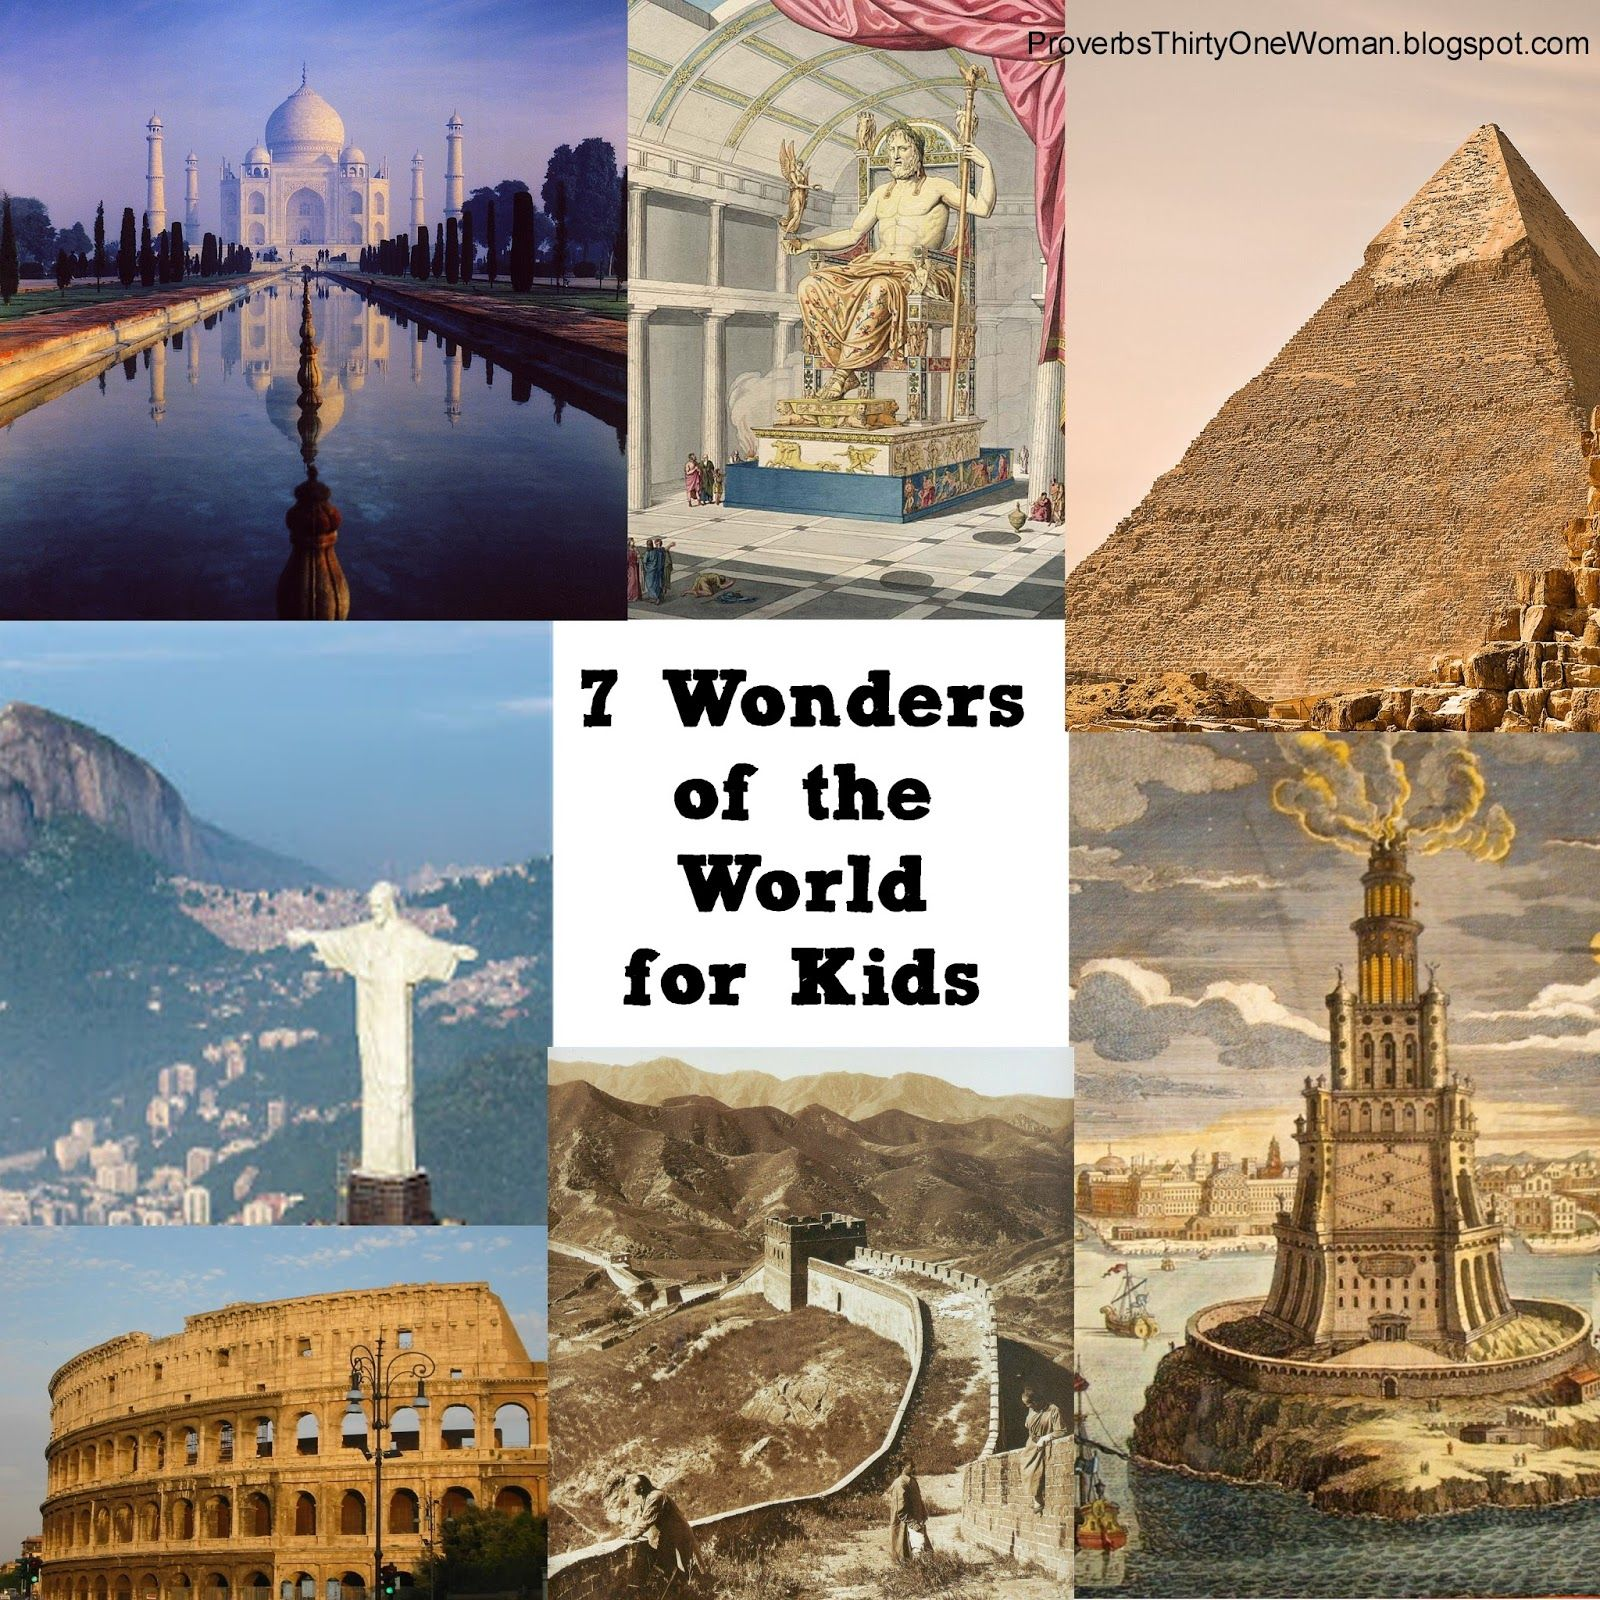 Kinder Garden: 7 Wonders Of The World: A Homeschool Or School Break